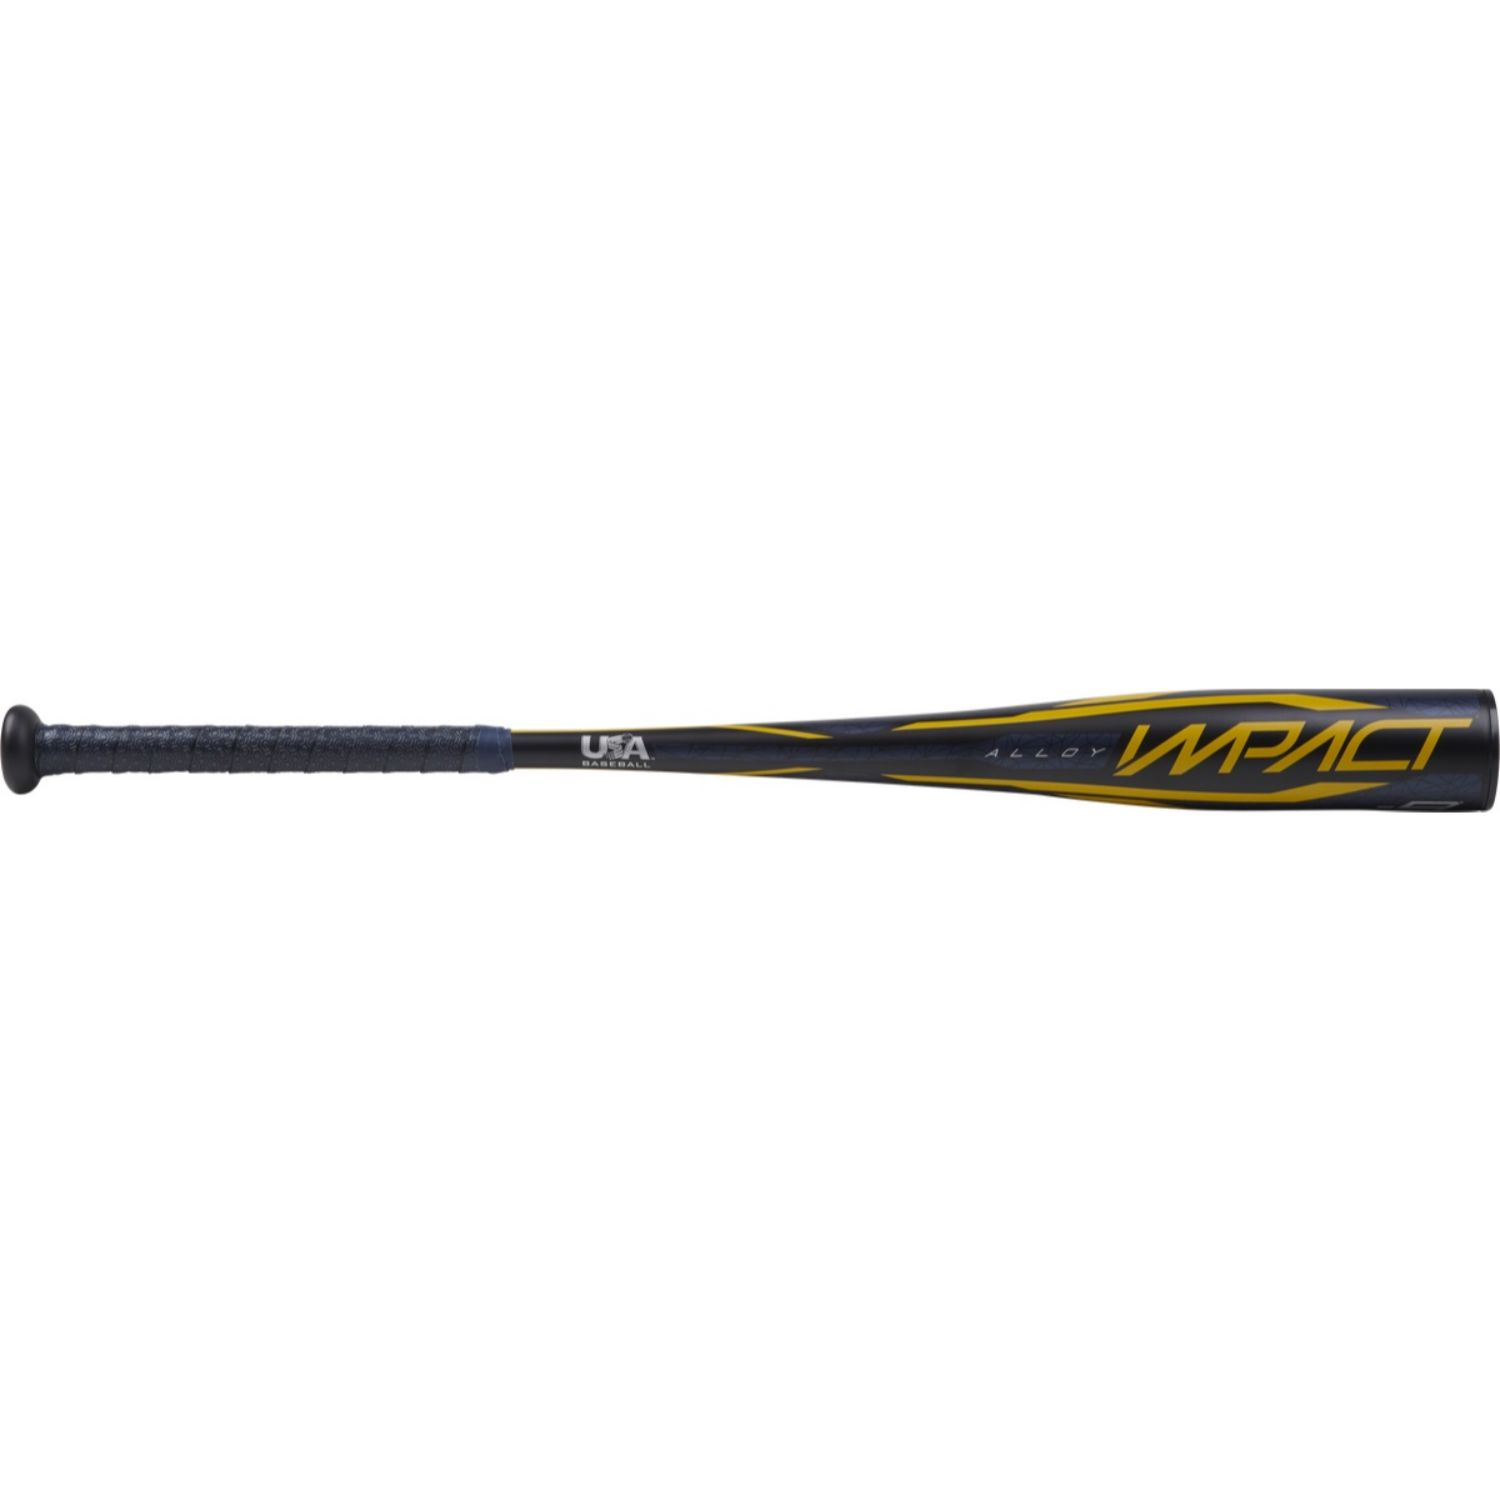 Rawlings 2020 29 in 20 oz Youth Impact Youth USA Bat -9